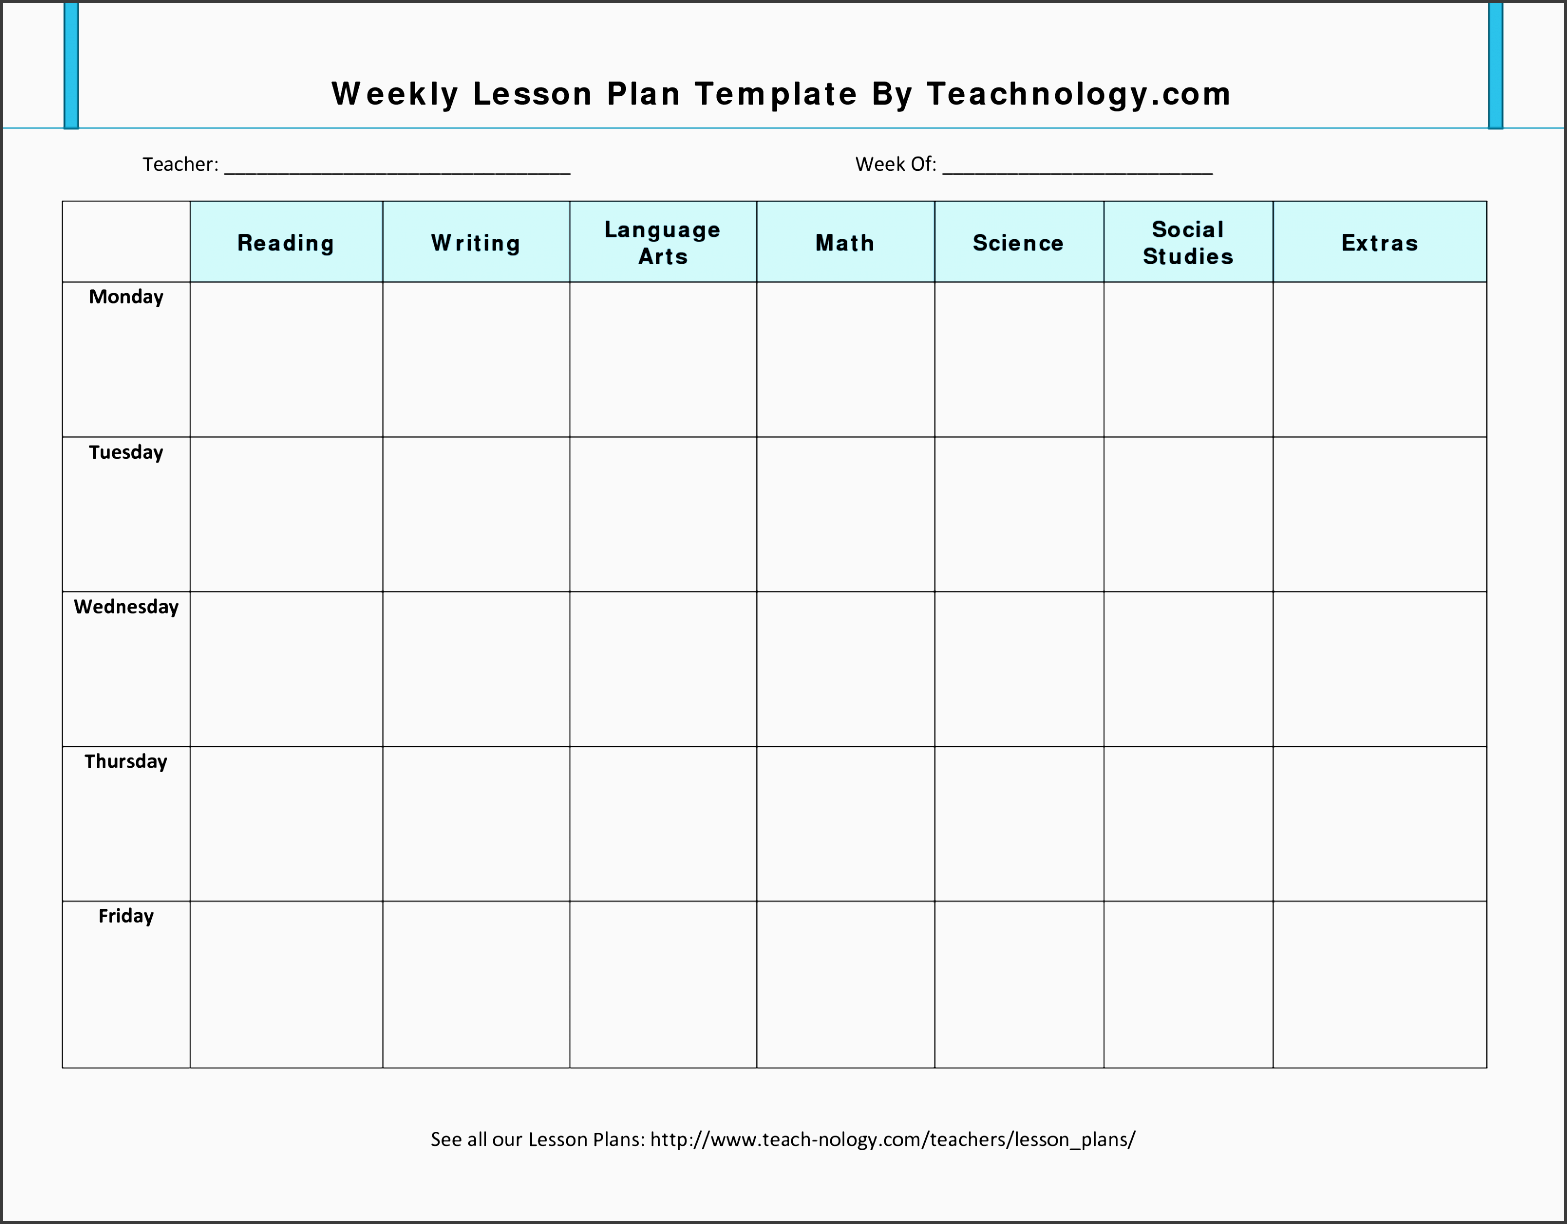 lesson plan format 7 weekly lesson plan template for teachers jsgts5gk